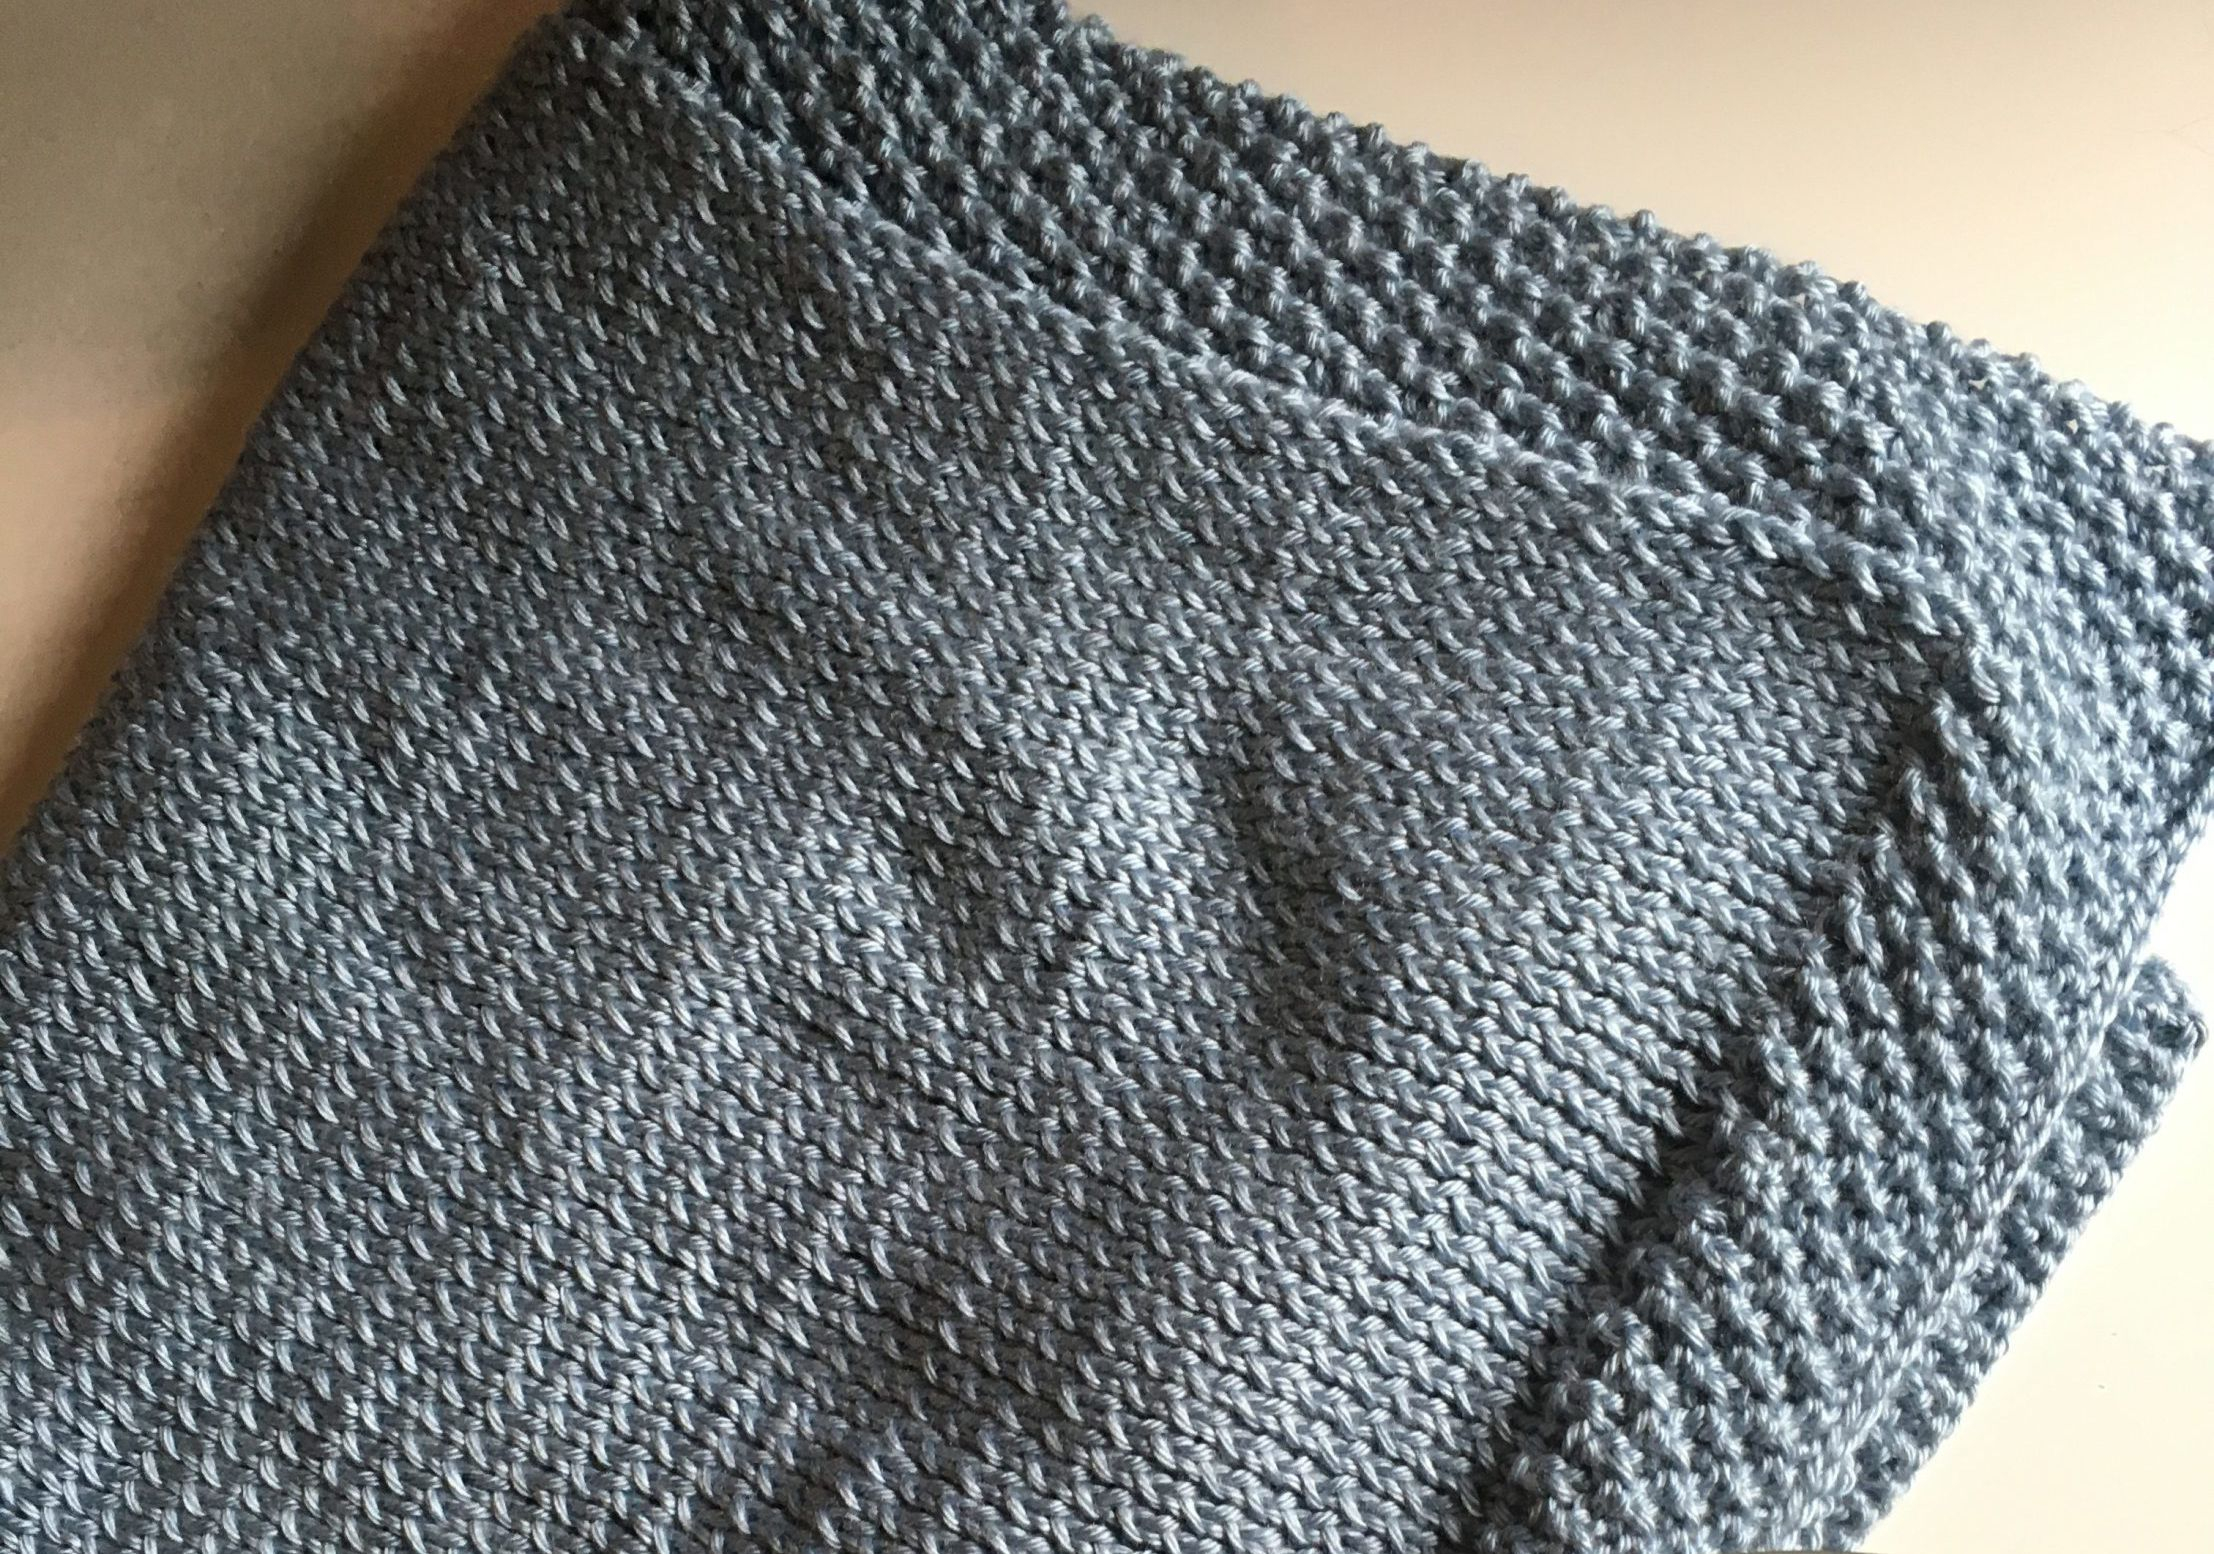 Knitting Afghan Patterns Free 25 Easy Knitting Patterns For Beginners